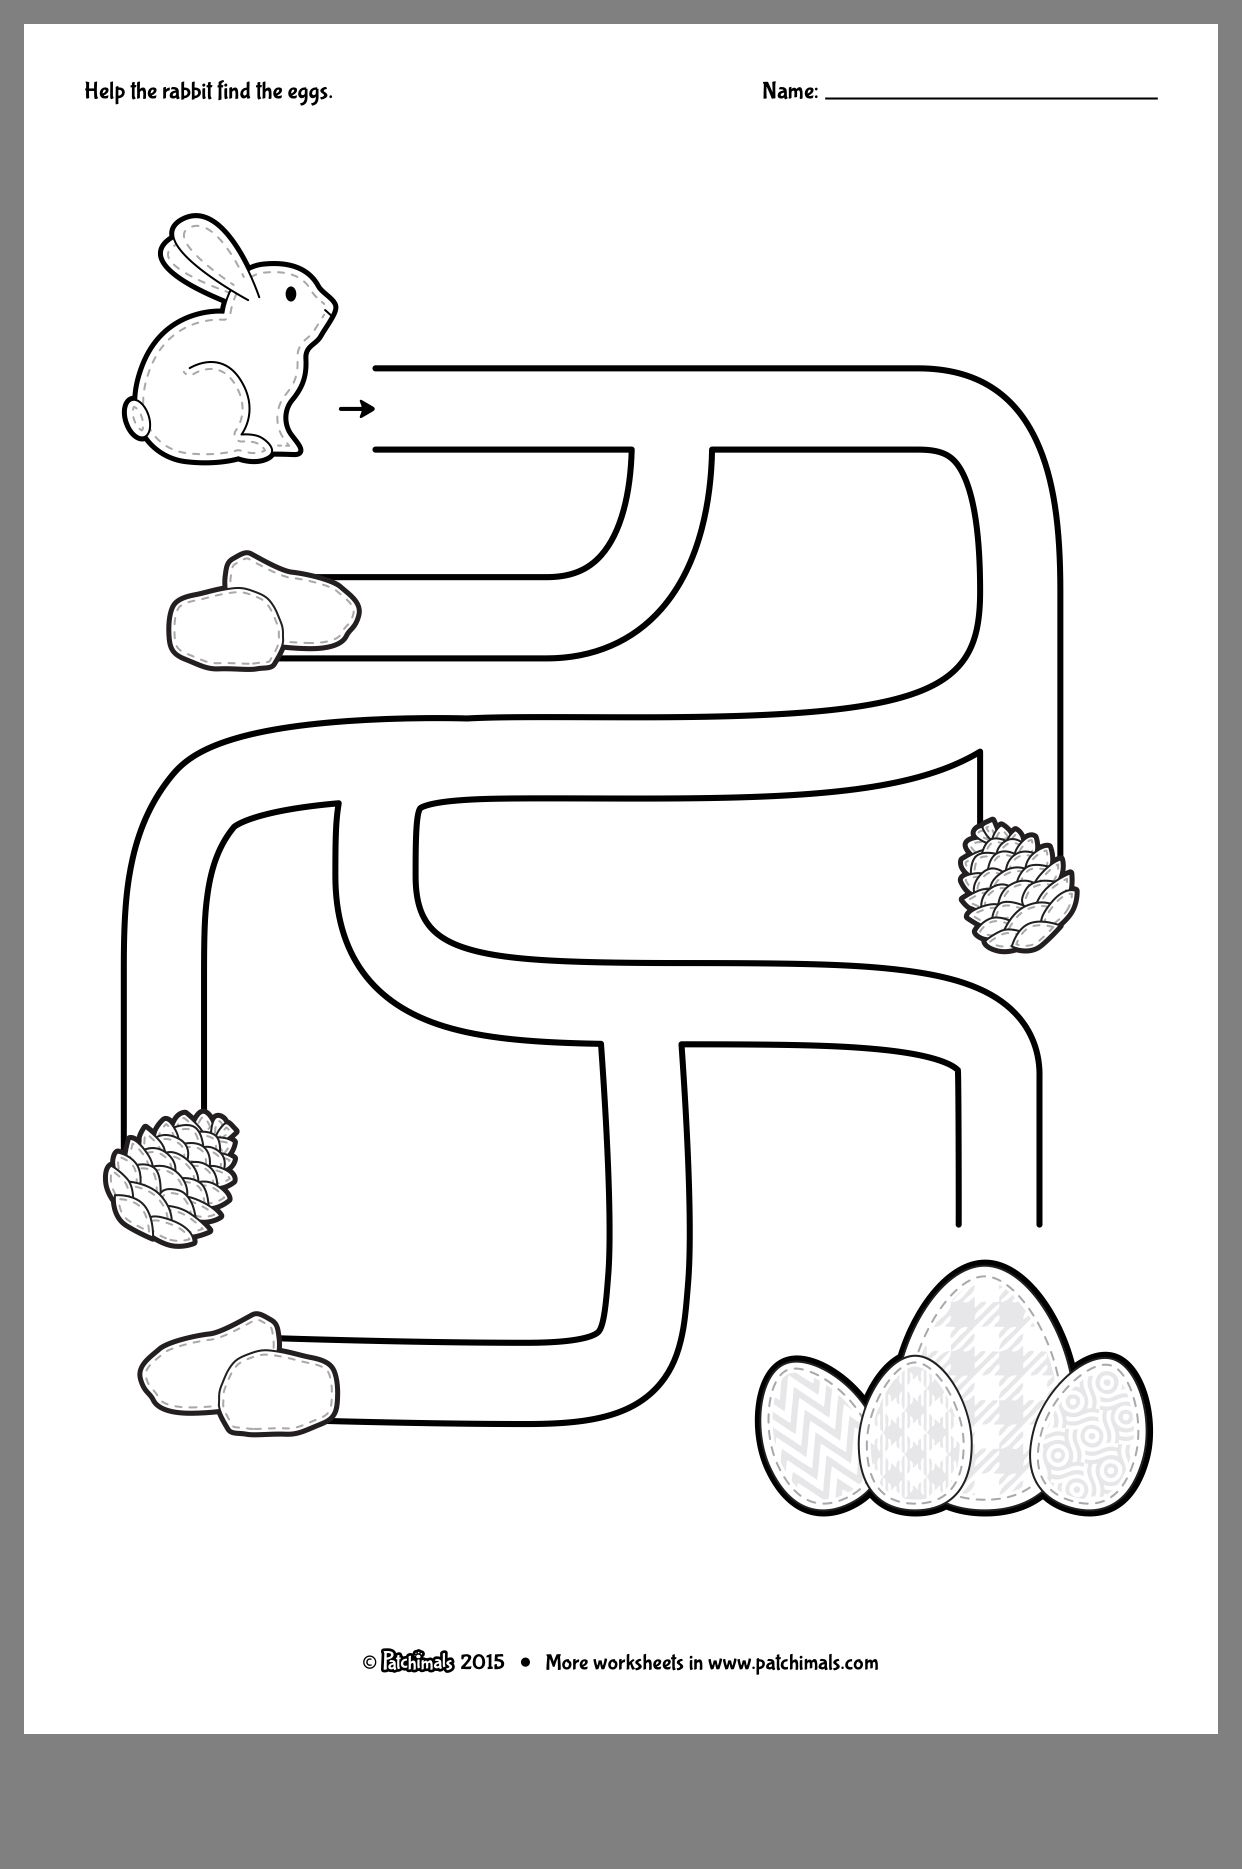 Pin By Melissa L Scott On Sunday School Coloring Sheets In